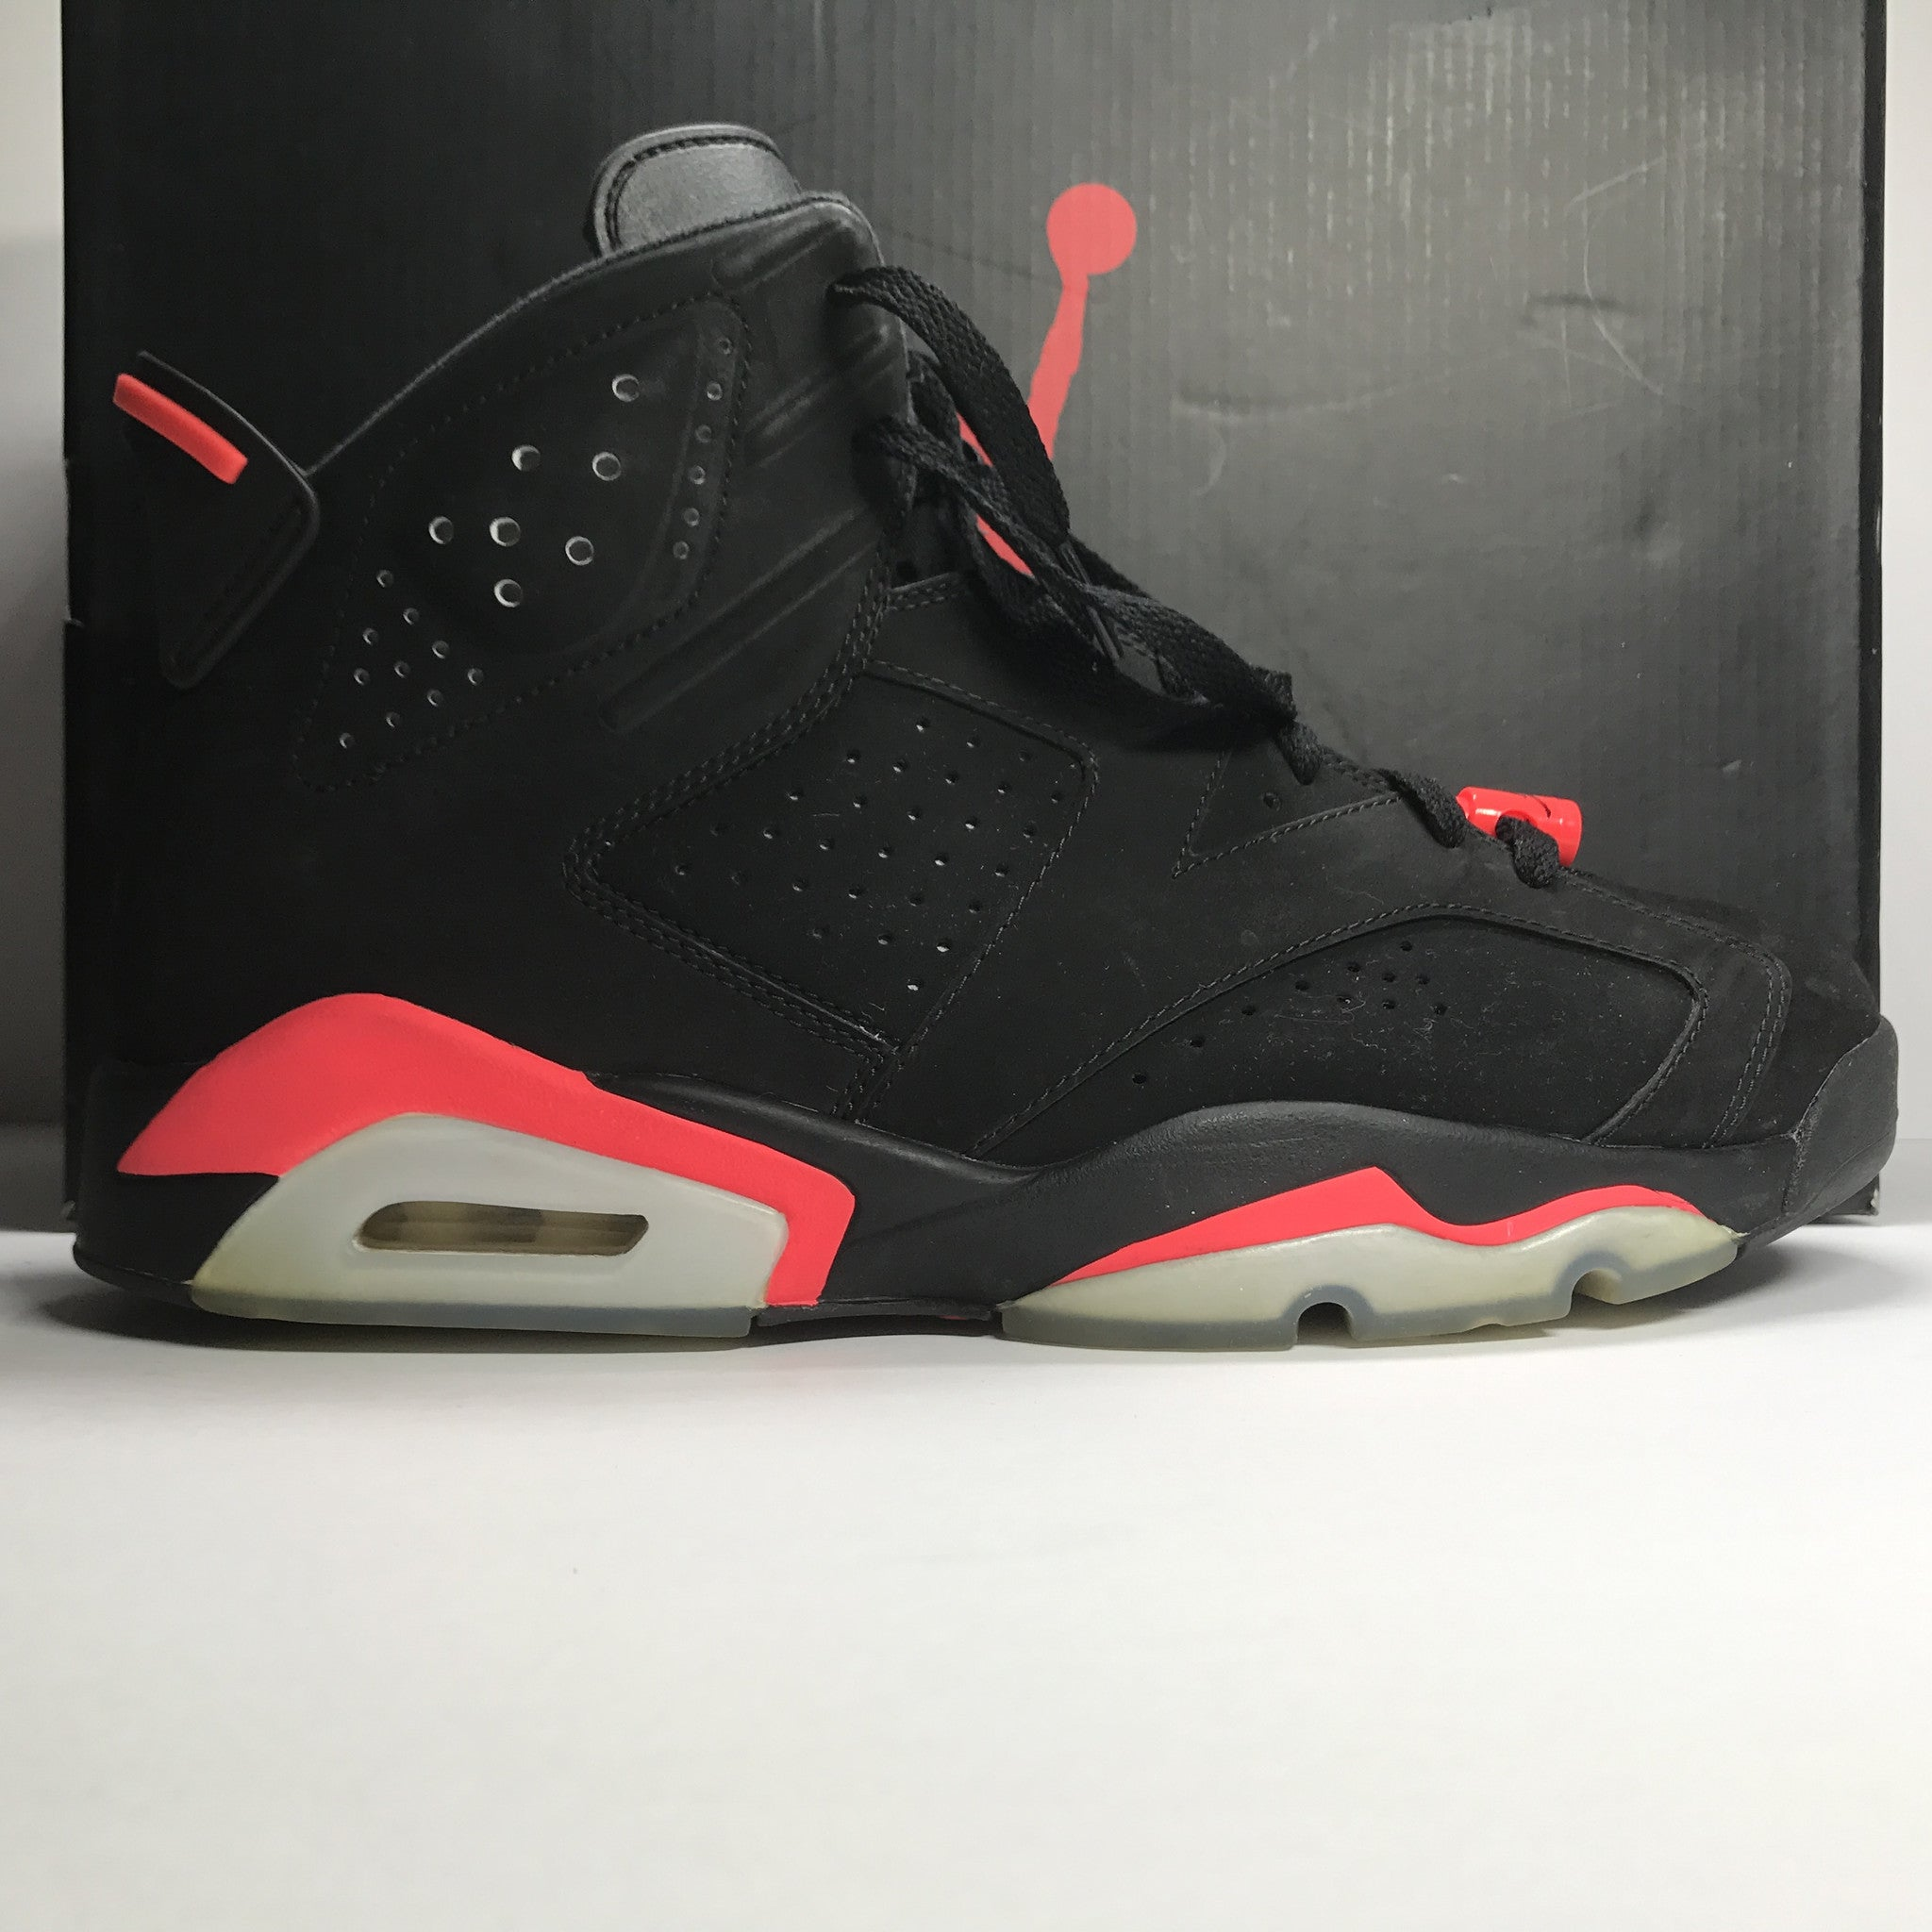 Nike Air Jordan 6 VI Retro Infrared Black Size 10